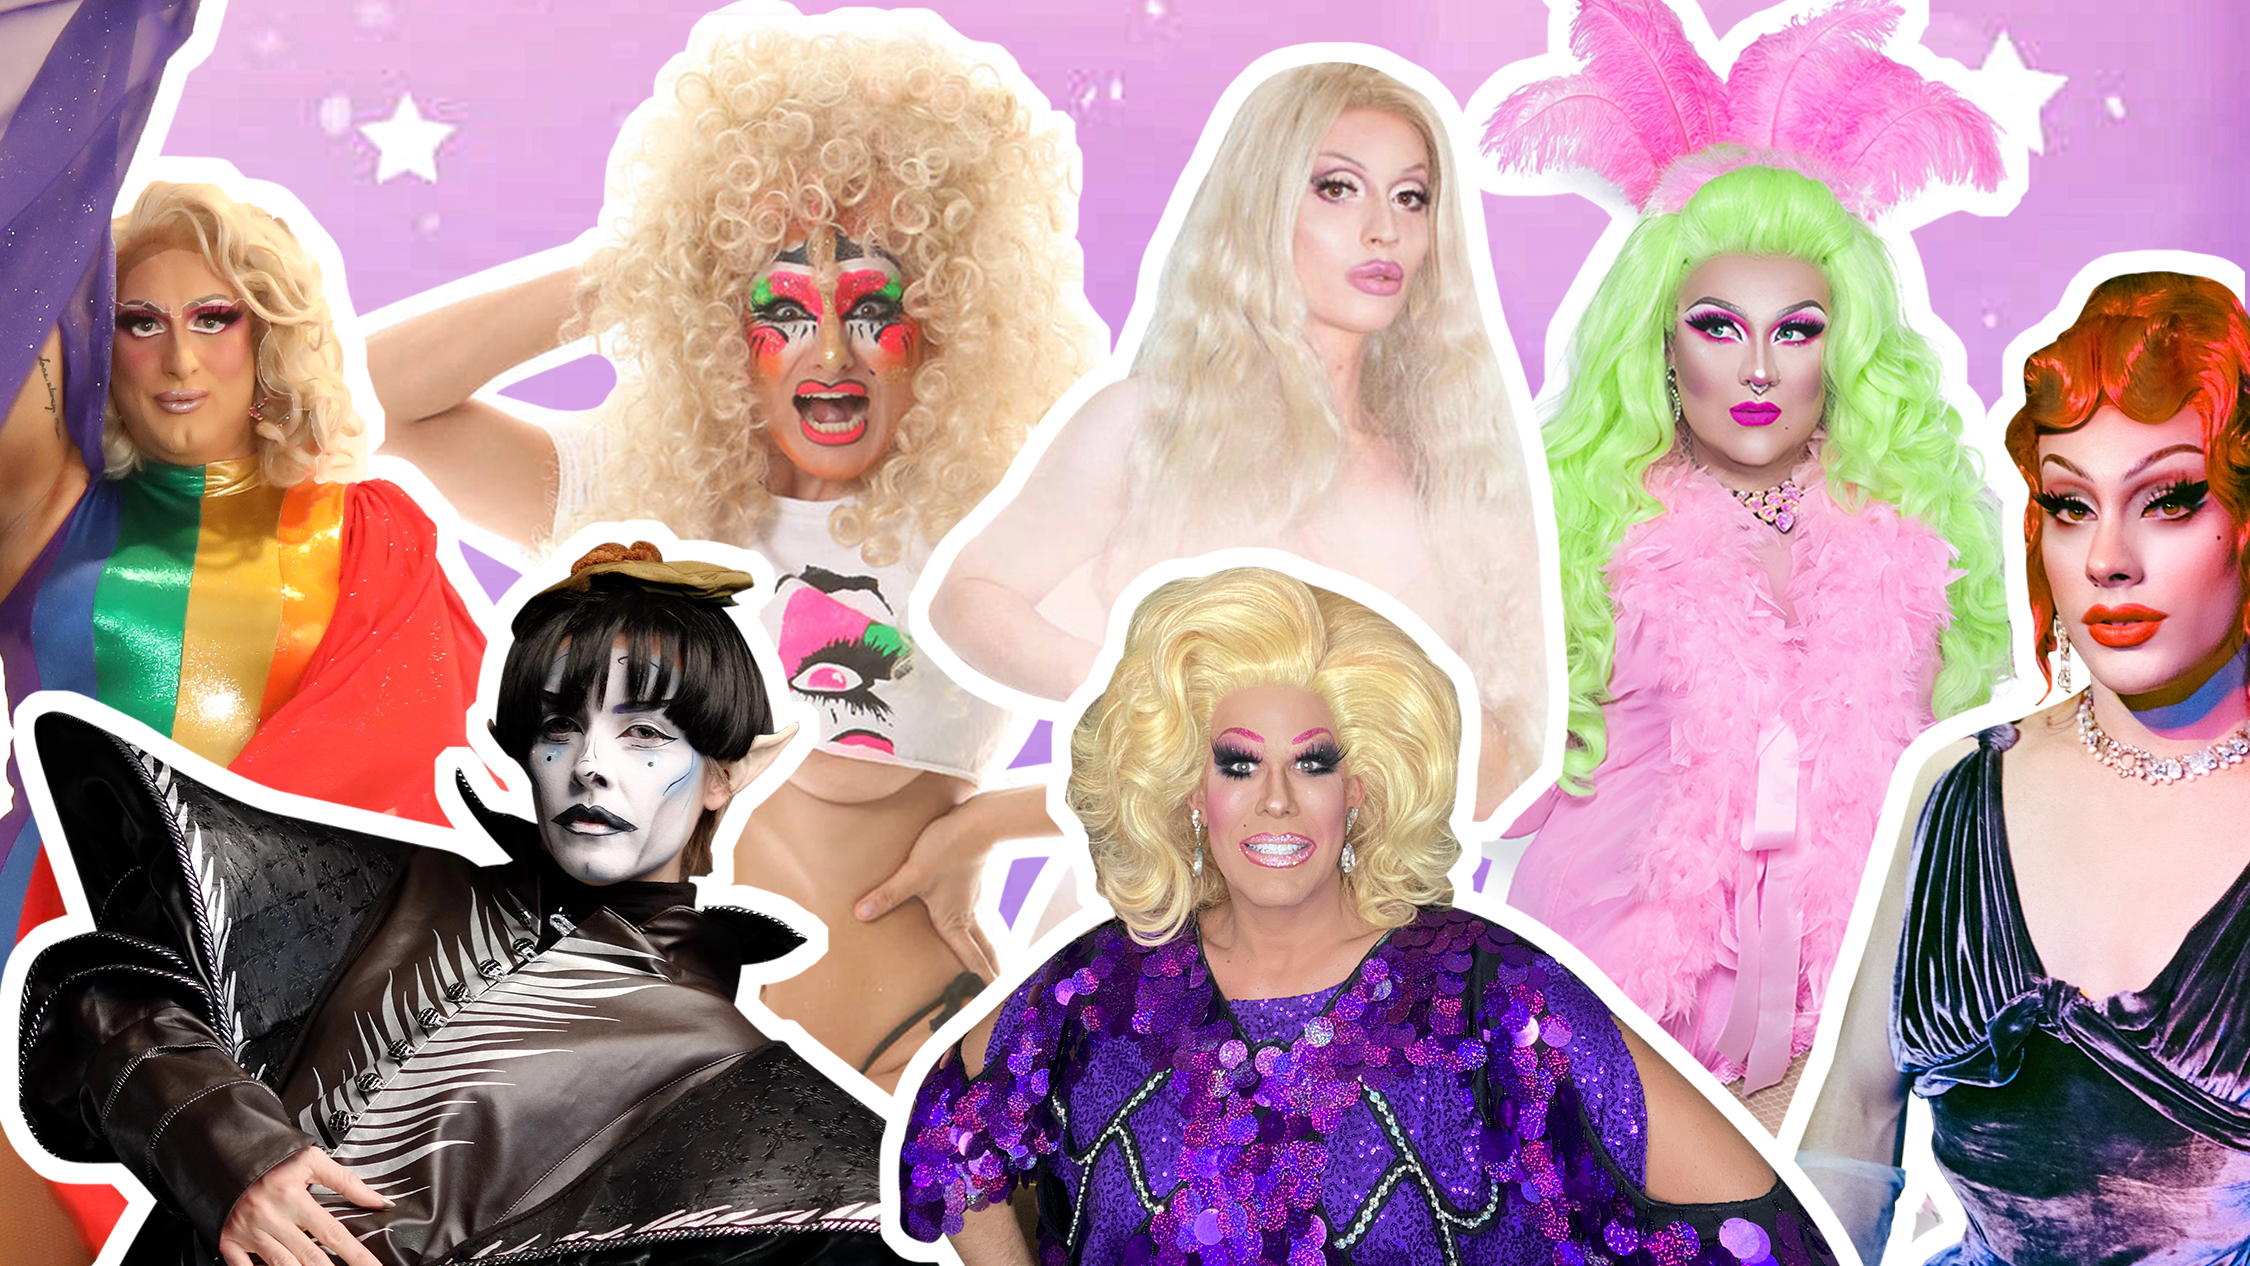 Images of local drag performers collaged together.